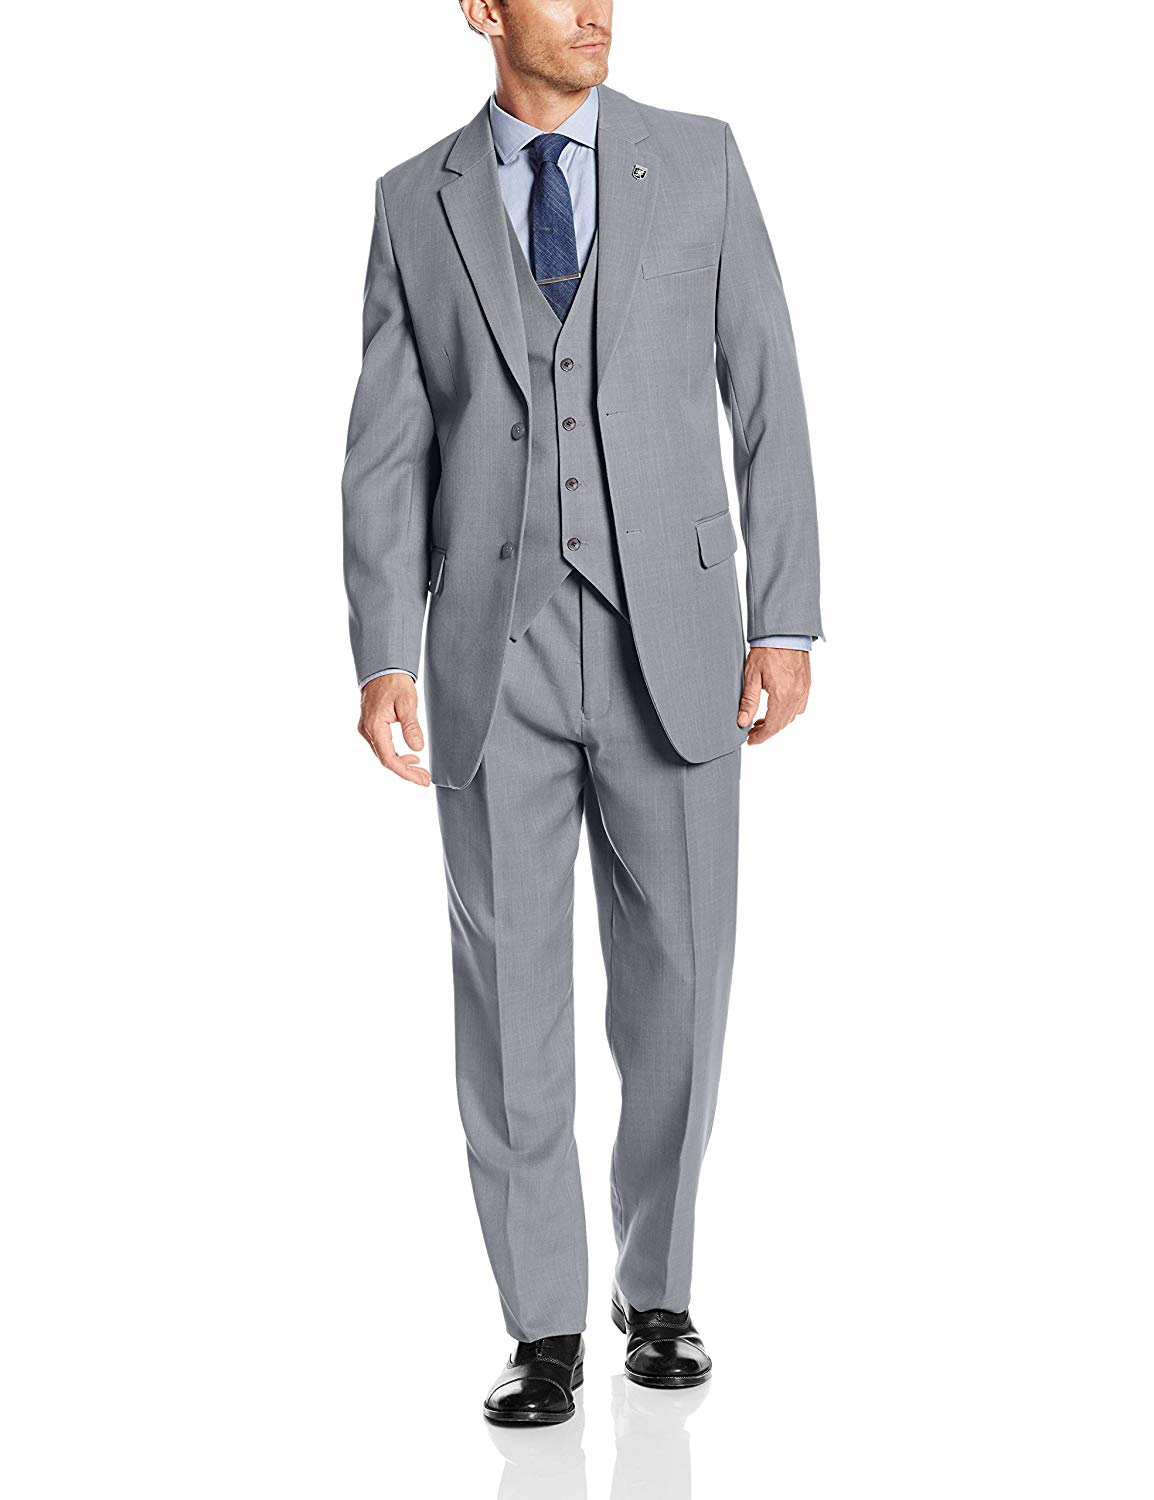 STACY ADAMS Men's Suny Vested 3 Piece Suit